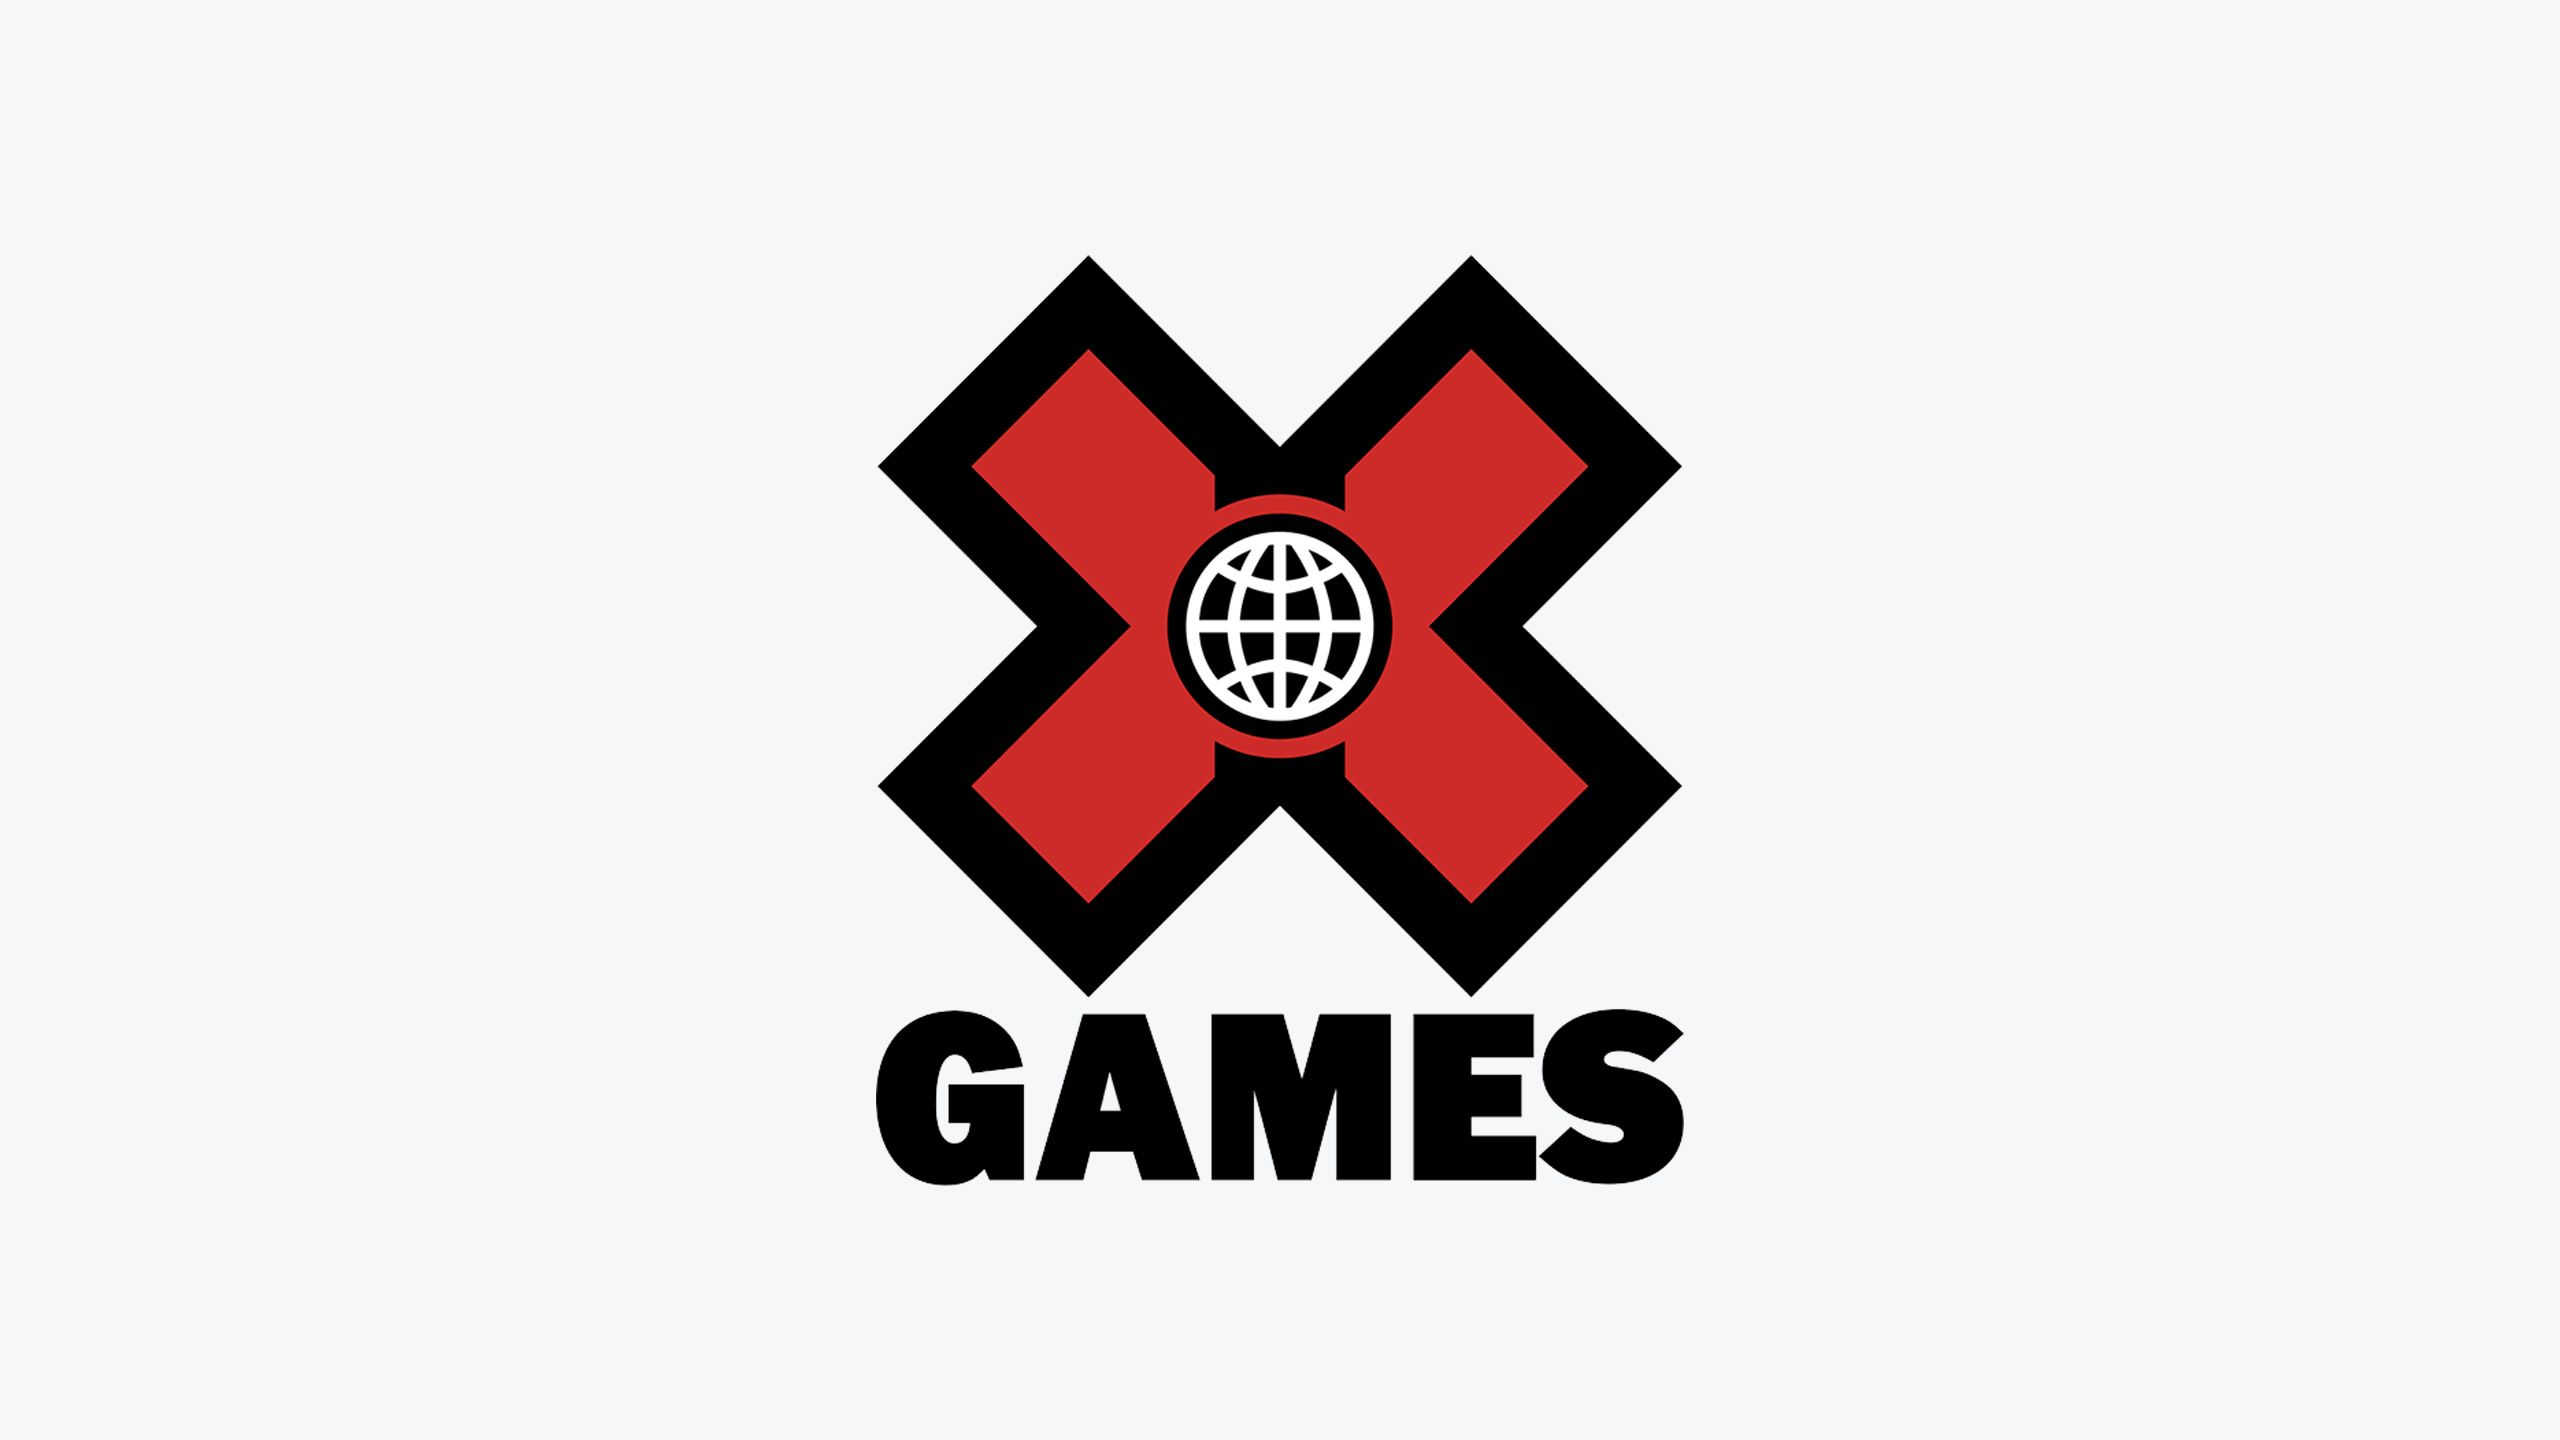 World of X Games - Video Premiere Show